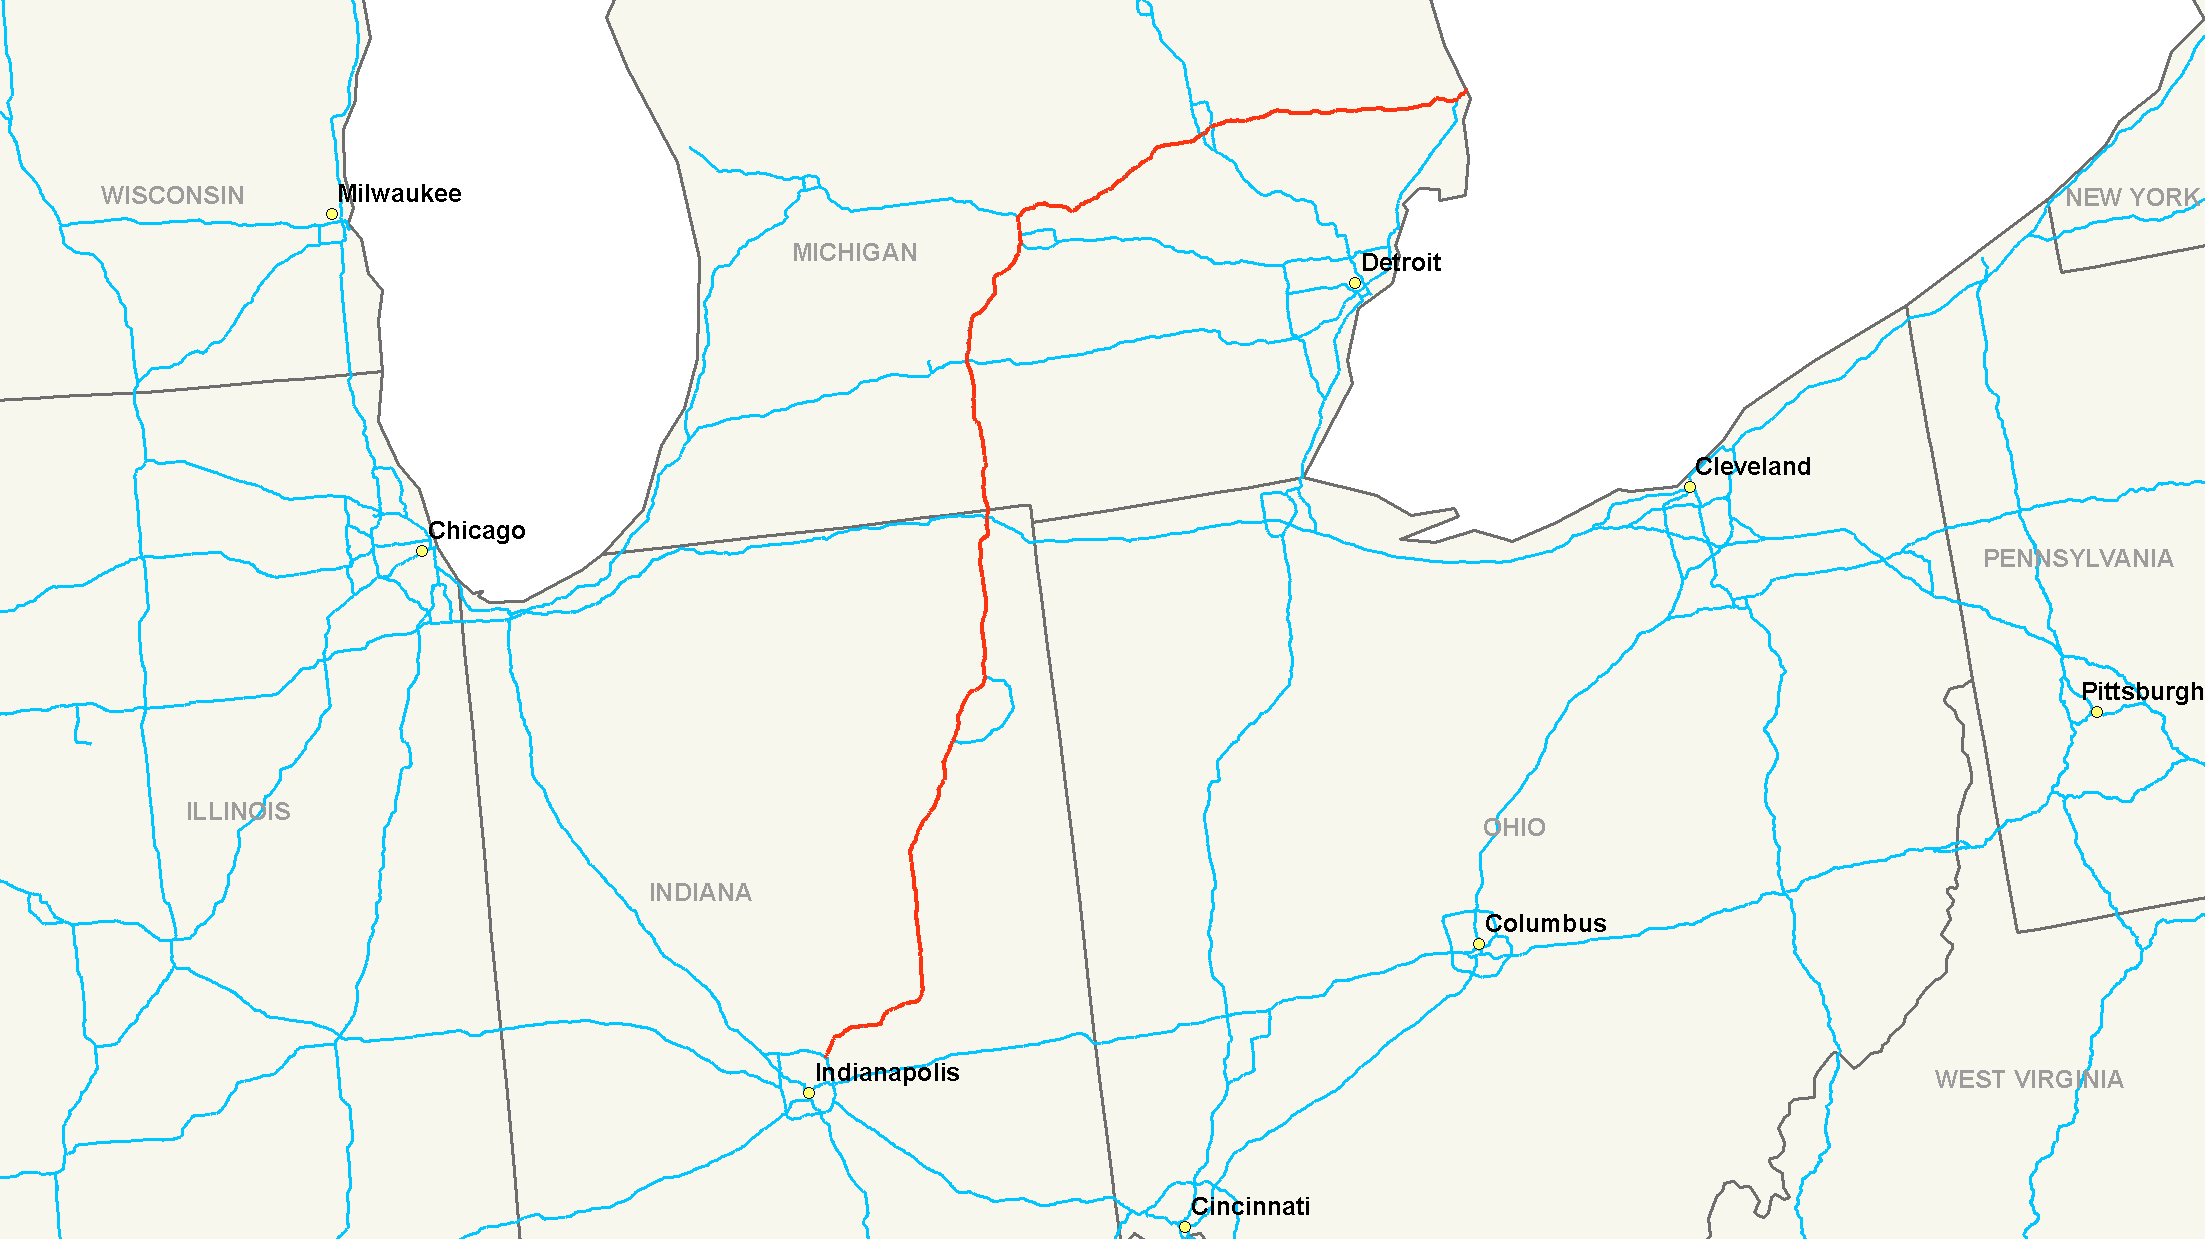 List of Synonyms and Antonyms of the Word Interstate 69 Map